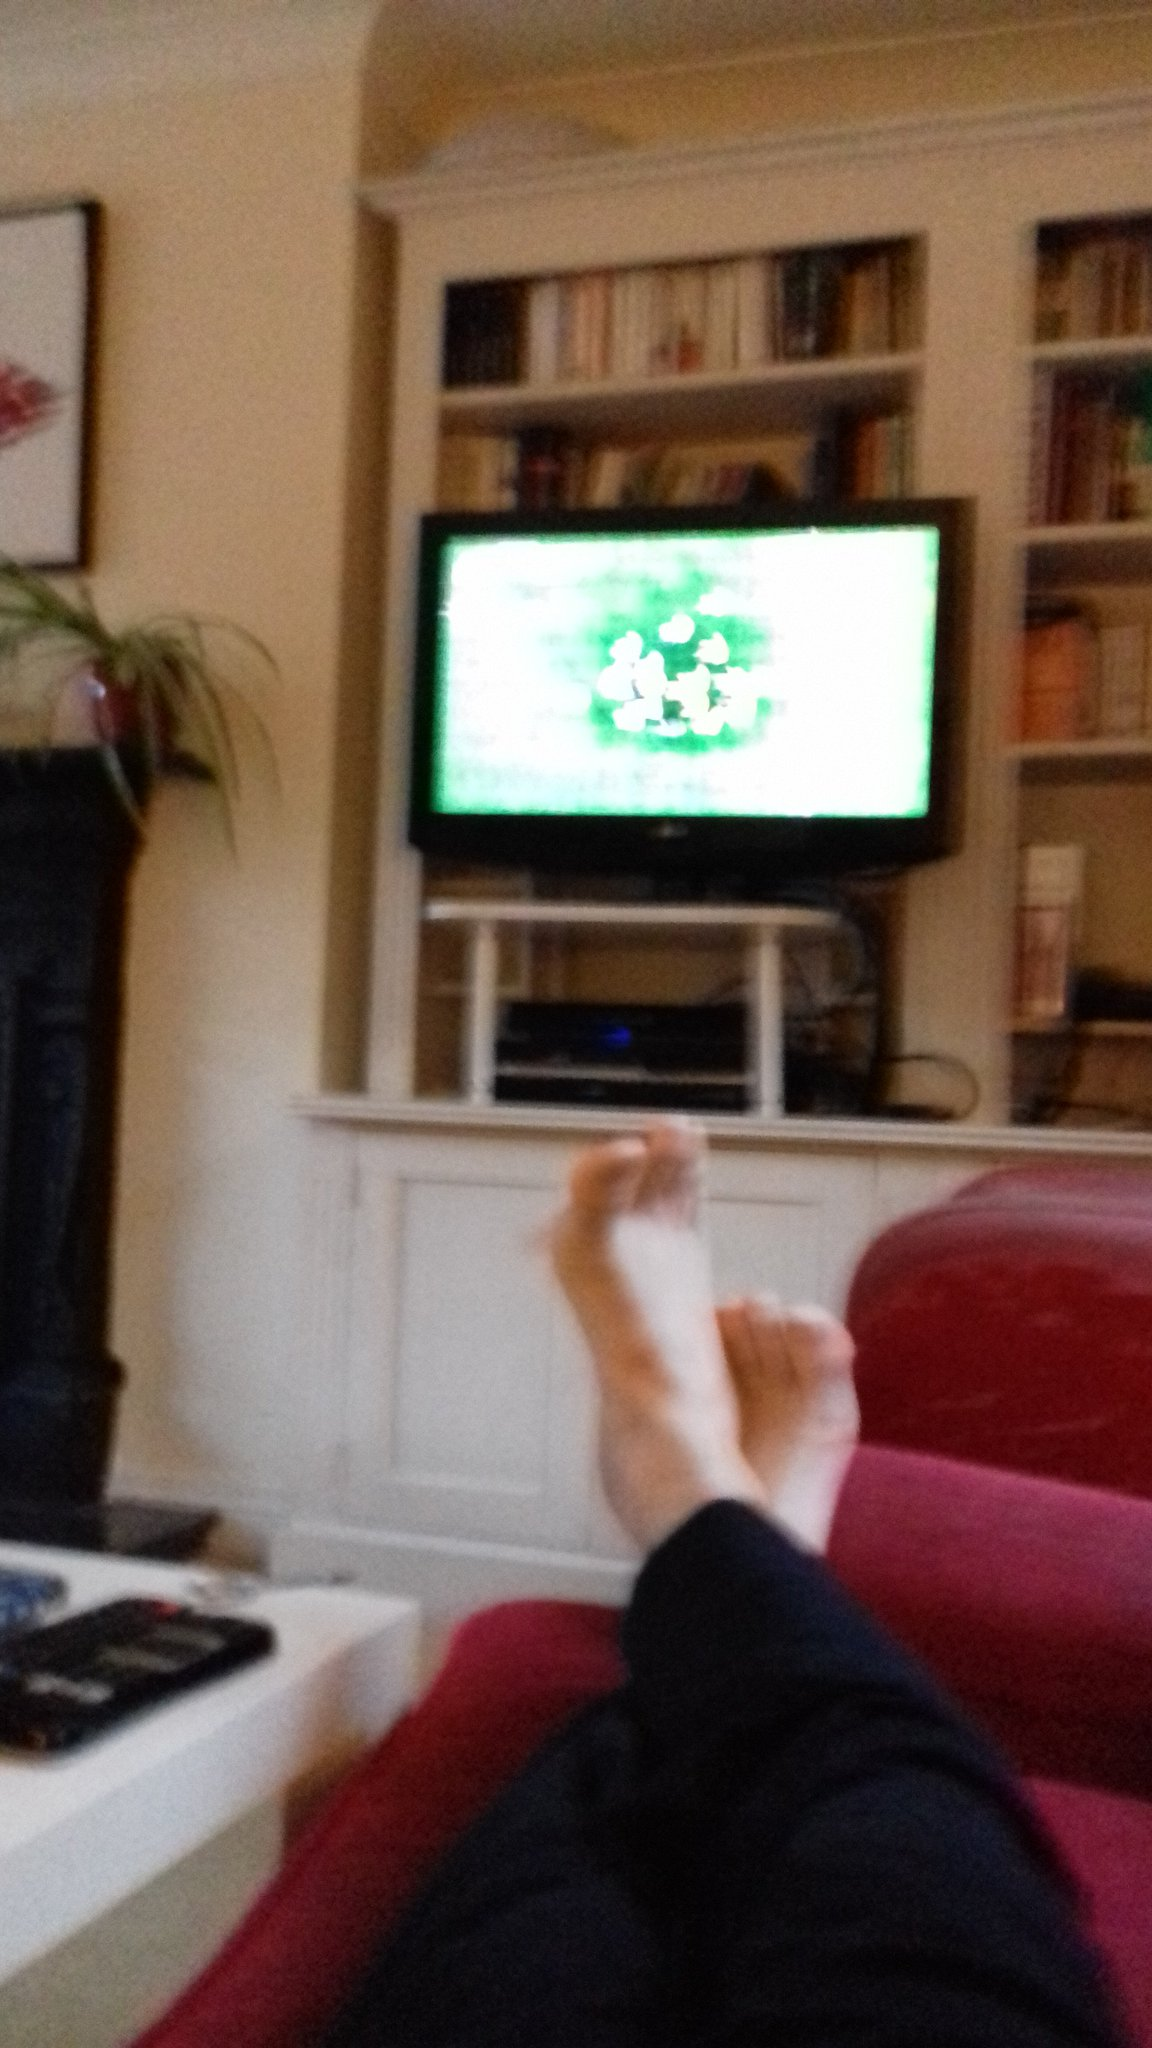 Dr Emmanuel G Reynaud On Twitter Ready Booked The Sofa My Kids Hate Me Rwc19 First Quarter Final Ausvseng But No Brexit I Hope My dog has similar allergies, although not as bad. twitter